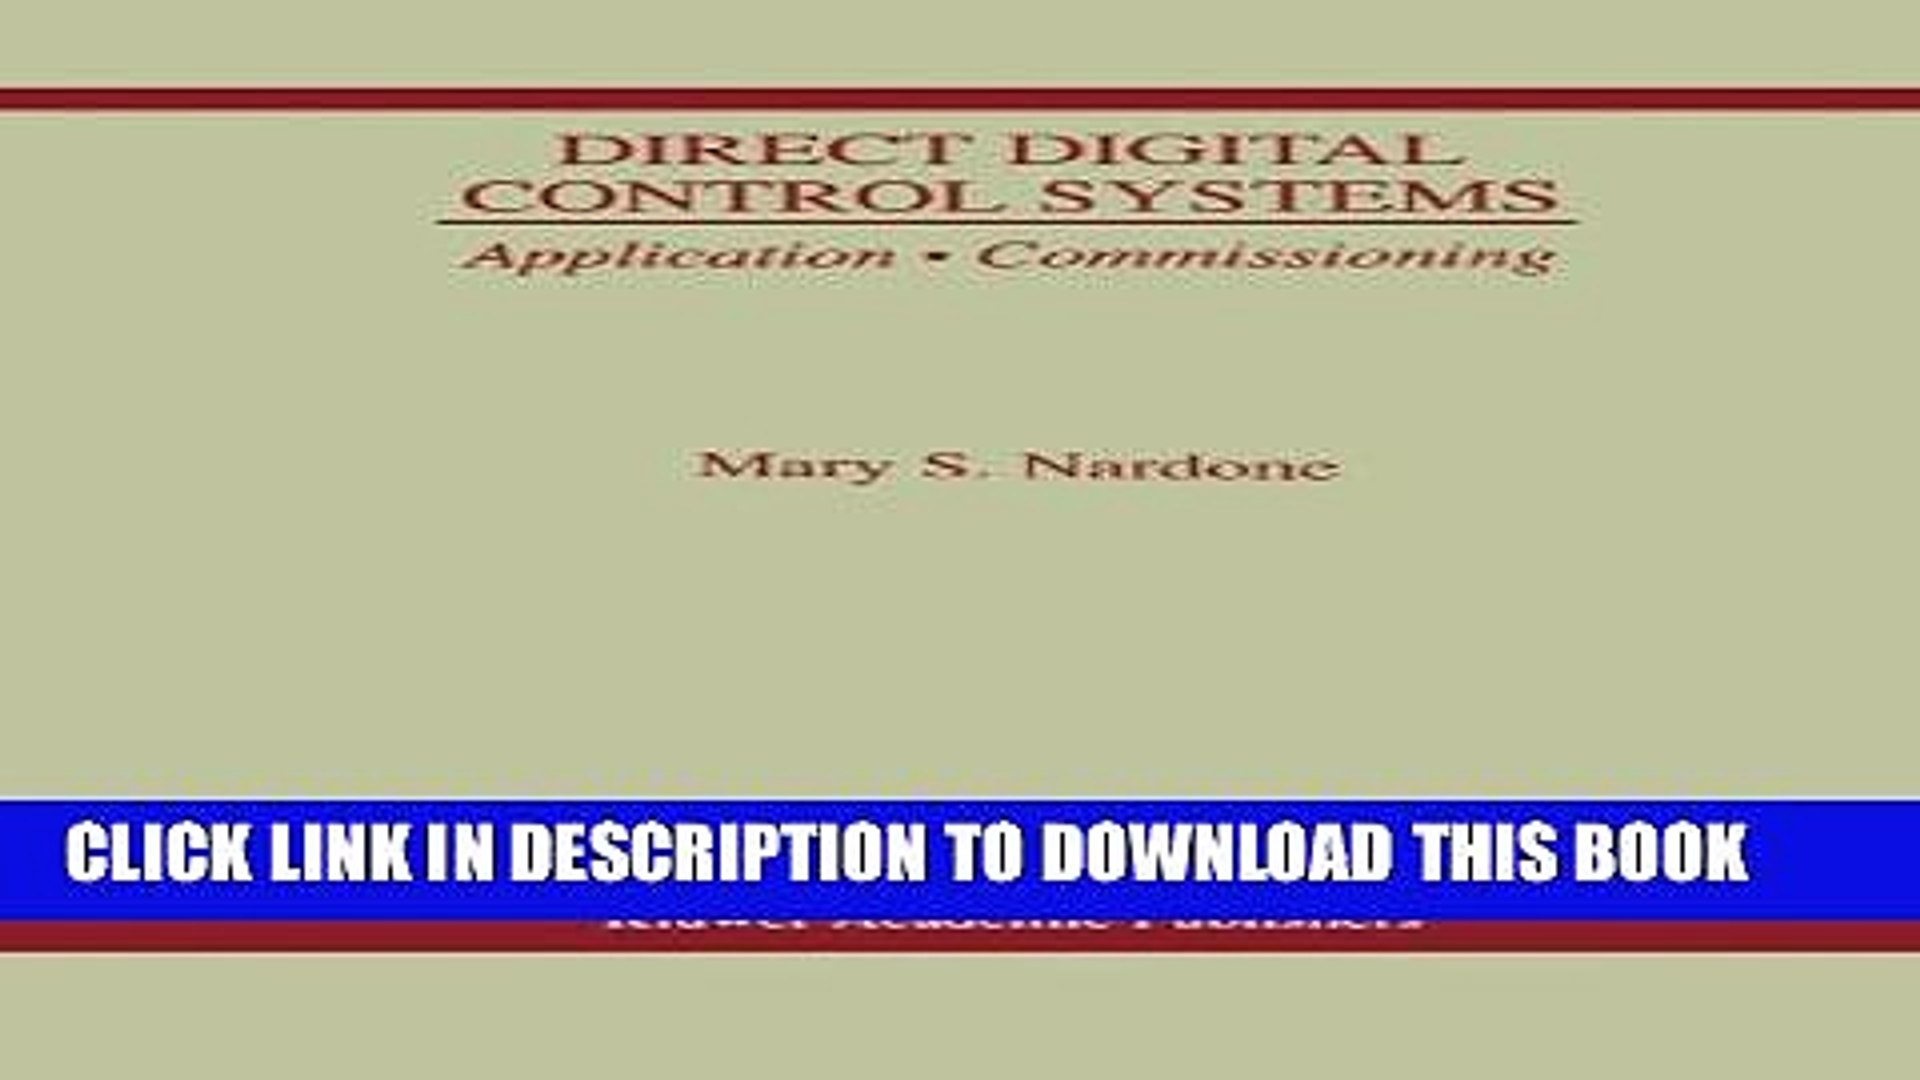 Application /· Commissioning Direct Digital Control Systems